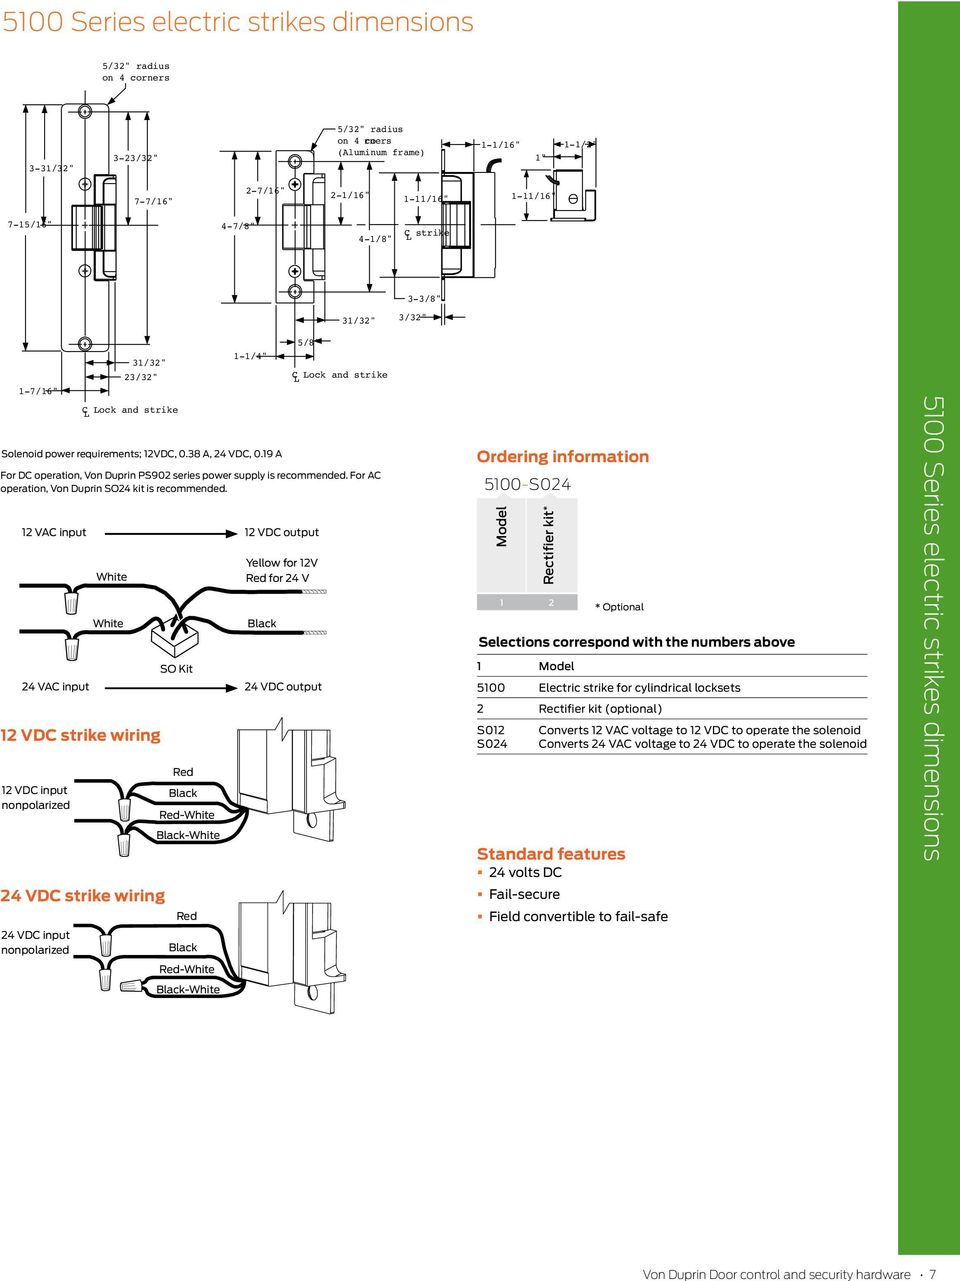 """Black Red-White Black-White -/4"""" Solenoid power requirements; 2VDC"""